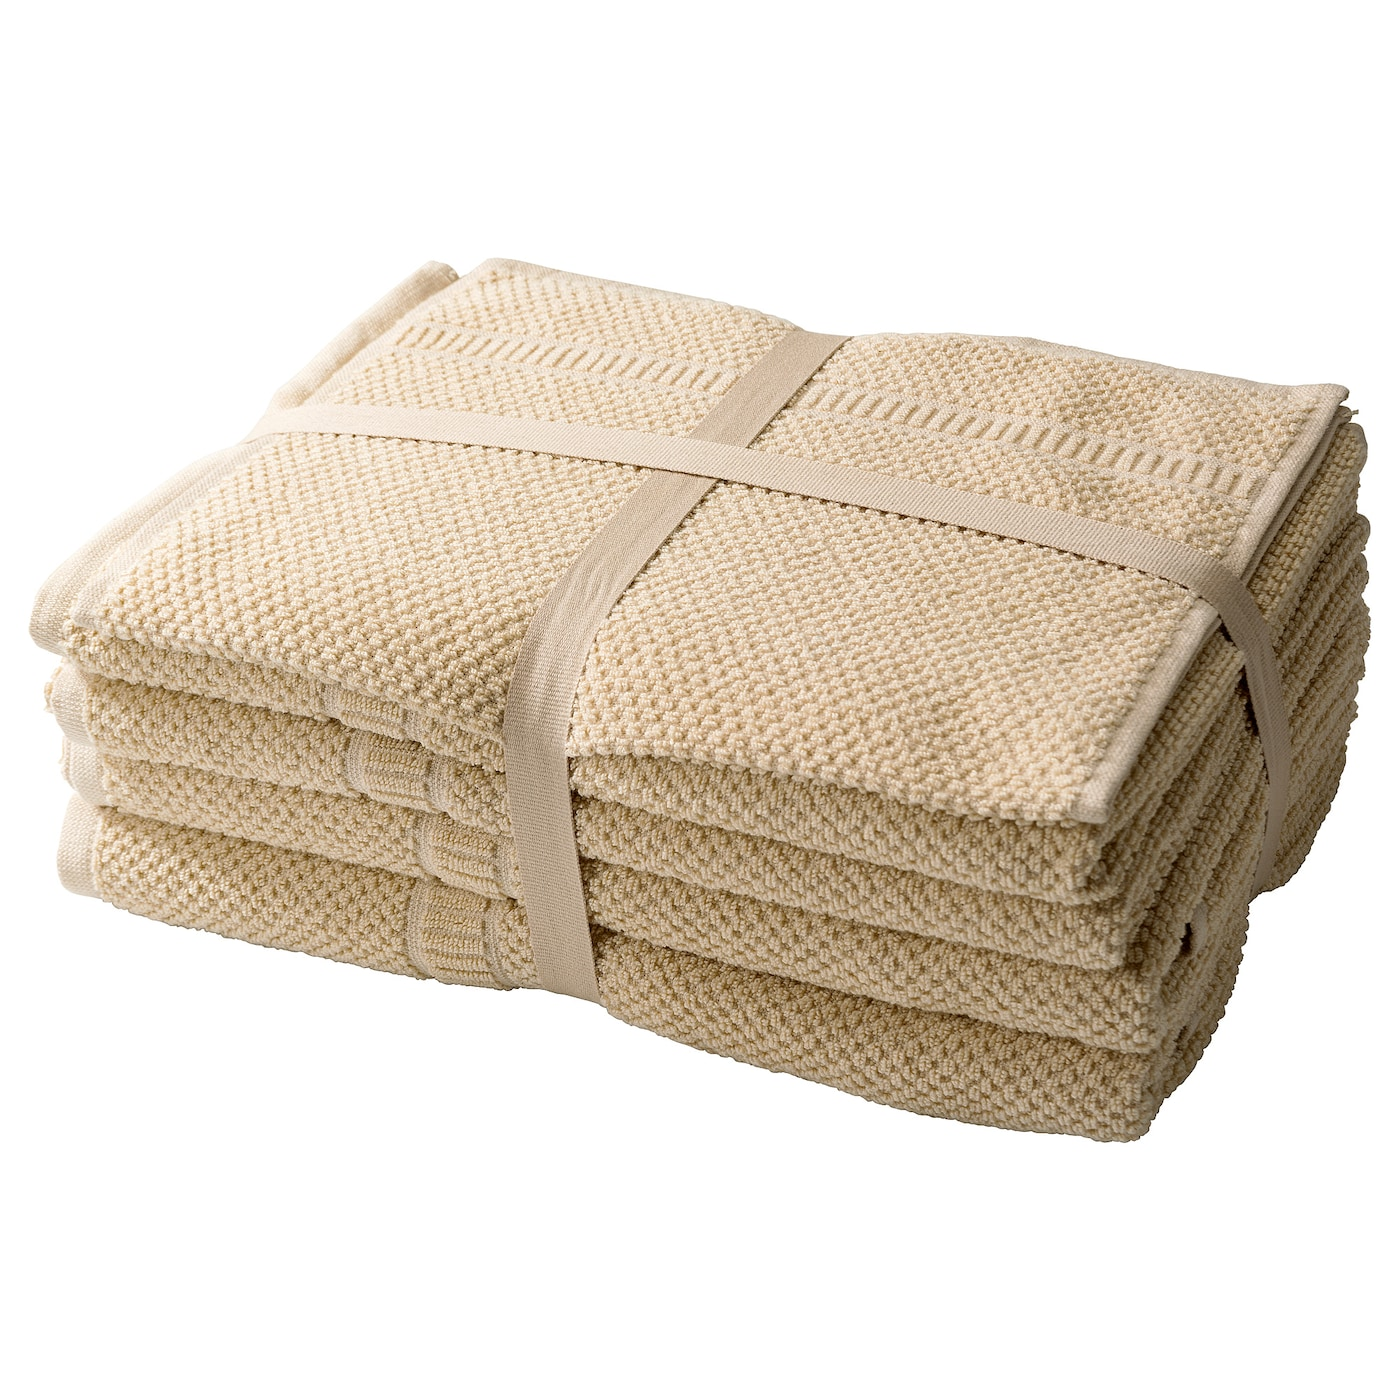 IKEA FRÄJEN towel, set of 5 The long, fine fibres of combed cotton create a soft and durable towel.